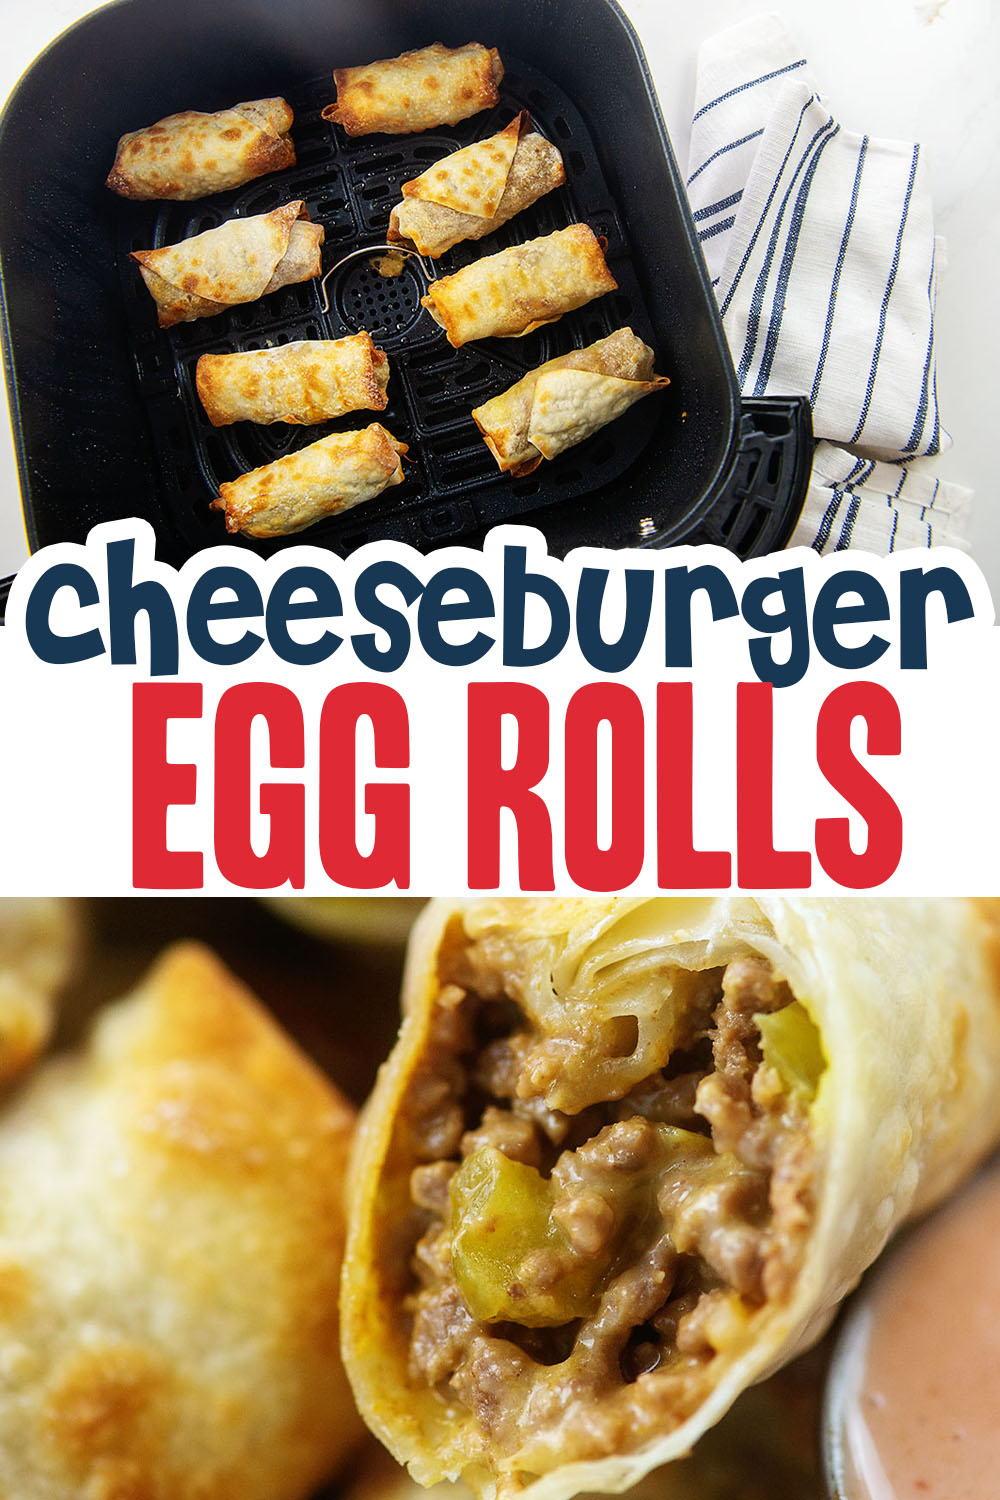 Cheeseburger egg rolls are a great way to have a finger food lunch with hardly any clean up!  Great for eating in your car even!